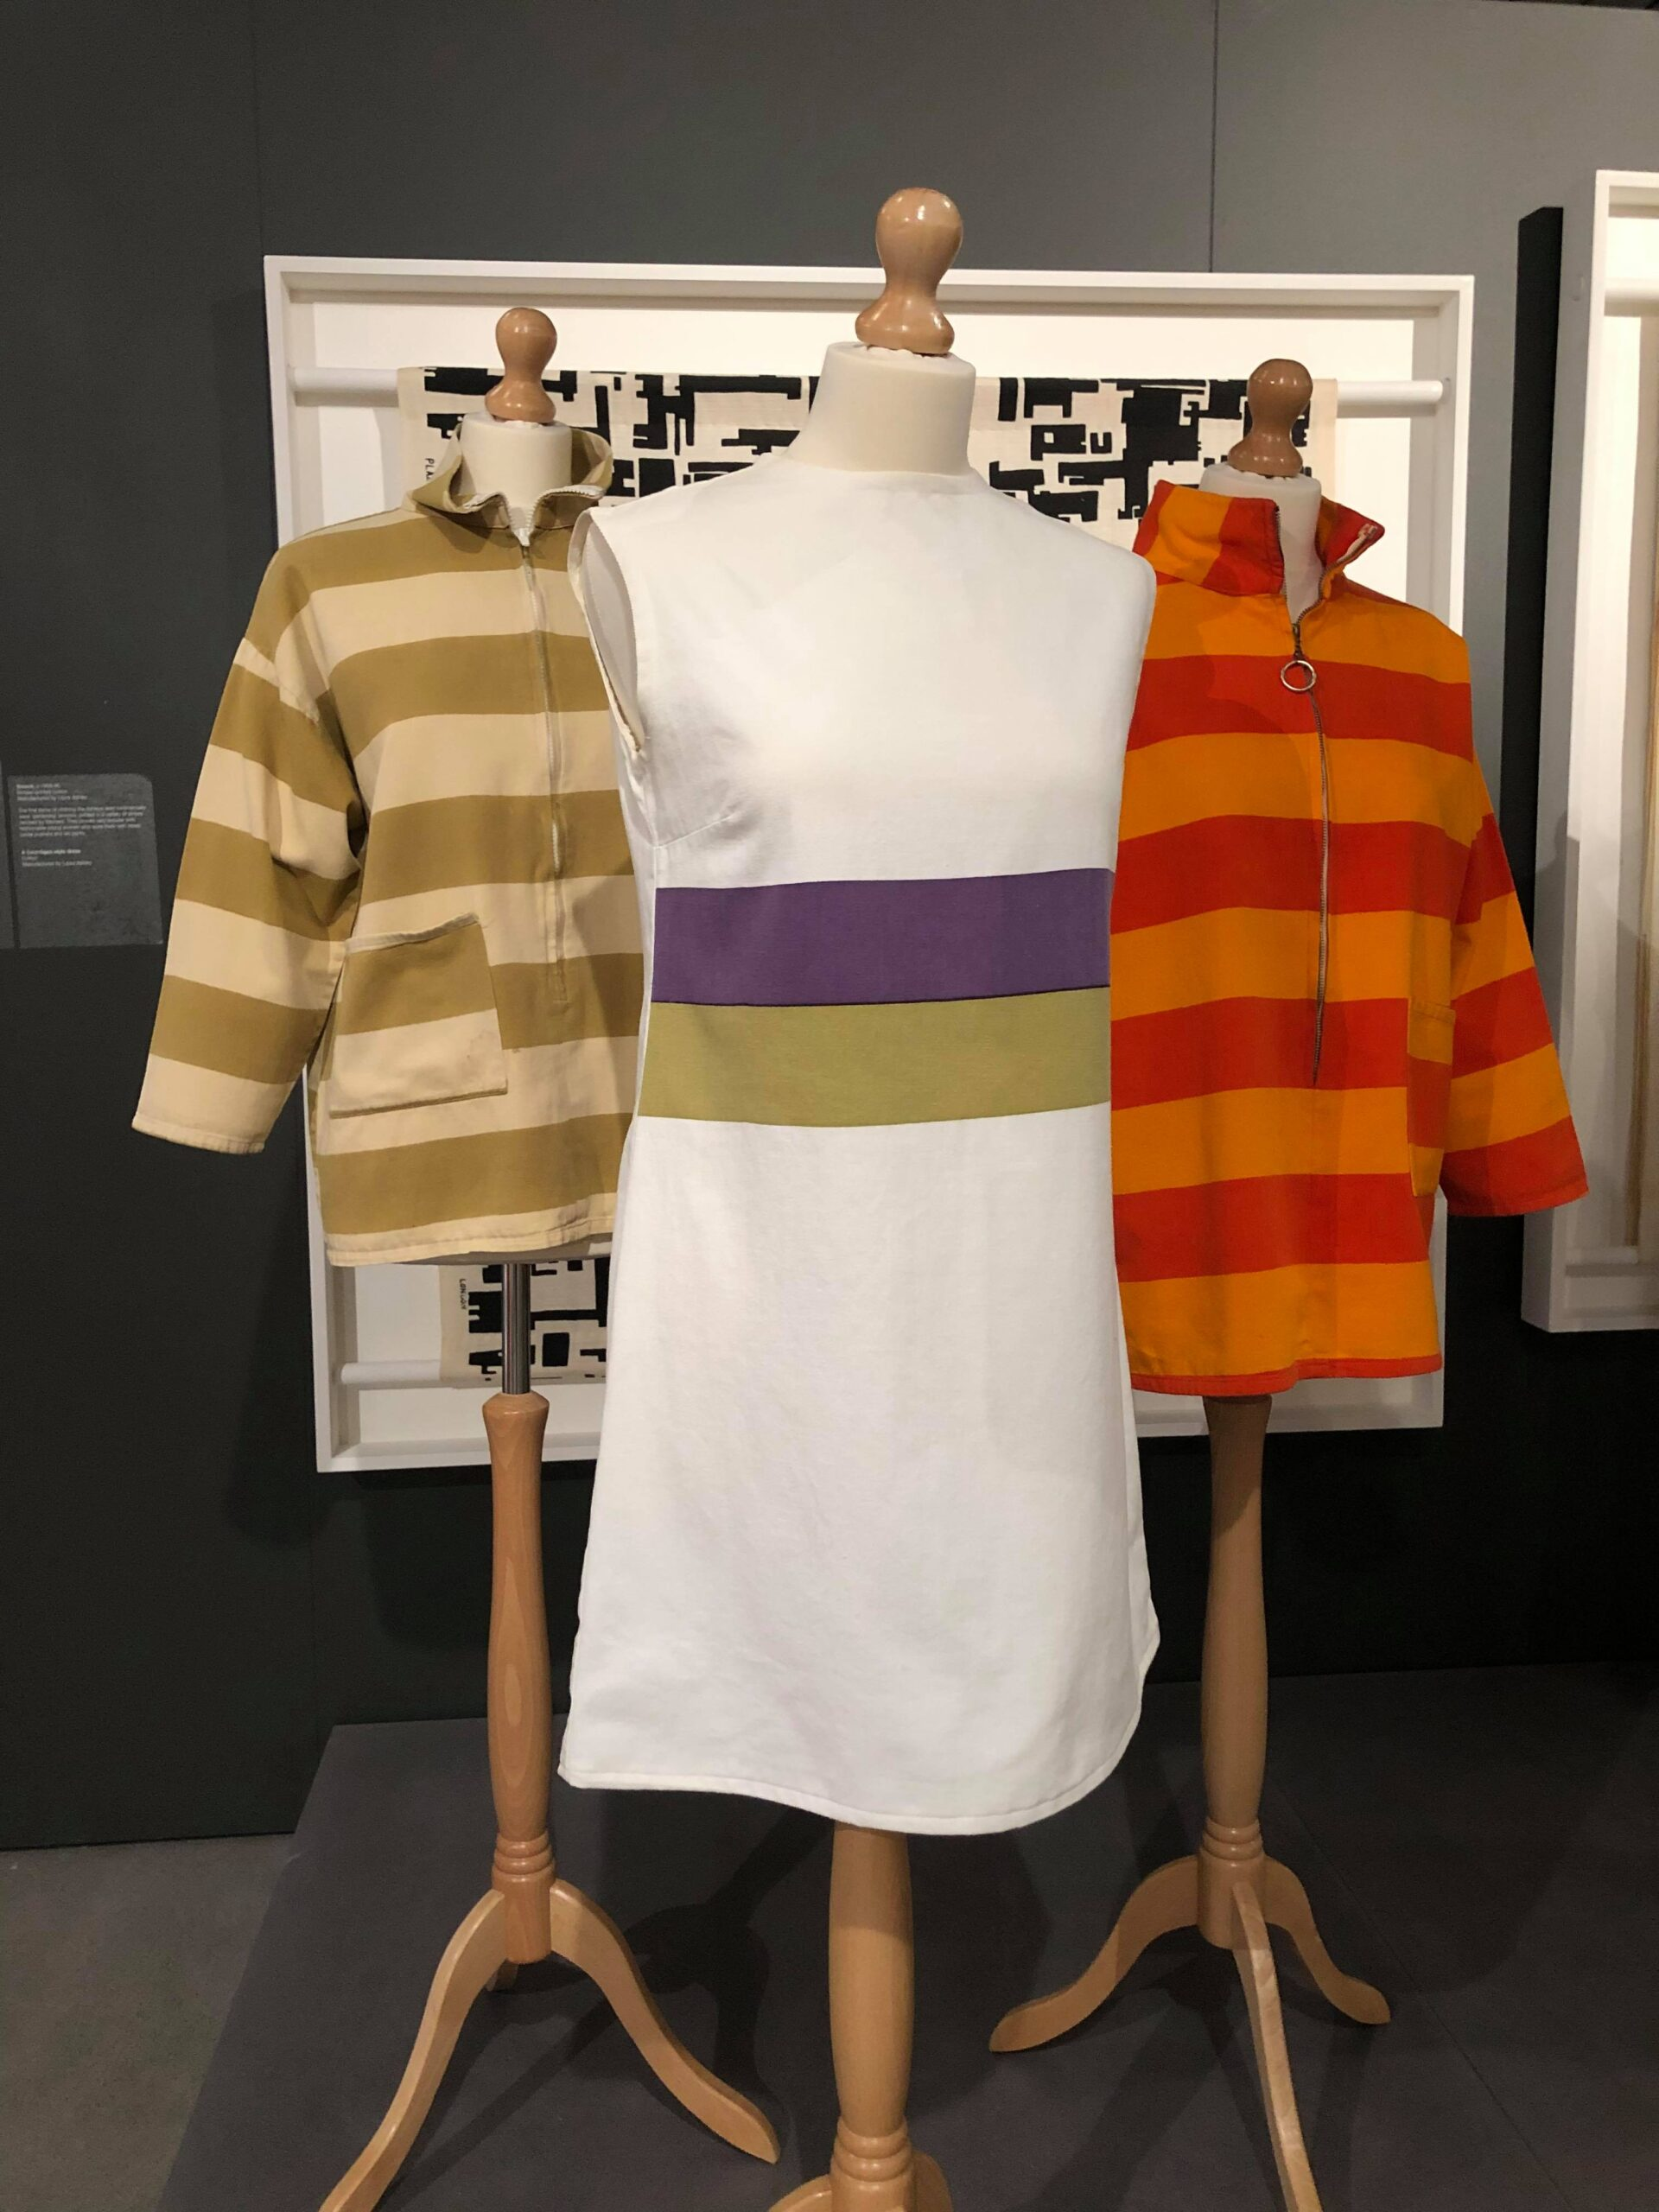 This photo shows a black background wall, with a large white square frame hanging on it. In the frame is a sample of a black and white patterned fabric. In the foreground are three mannequins. Two of them wear striped canvas gardening smocks, on the left is a beige and green one, on the right a bright orange and red. The front mannequin wears a white basic sleeveless minidress with two thick stripes across the waist, one in purple and one in green.